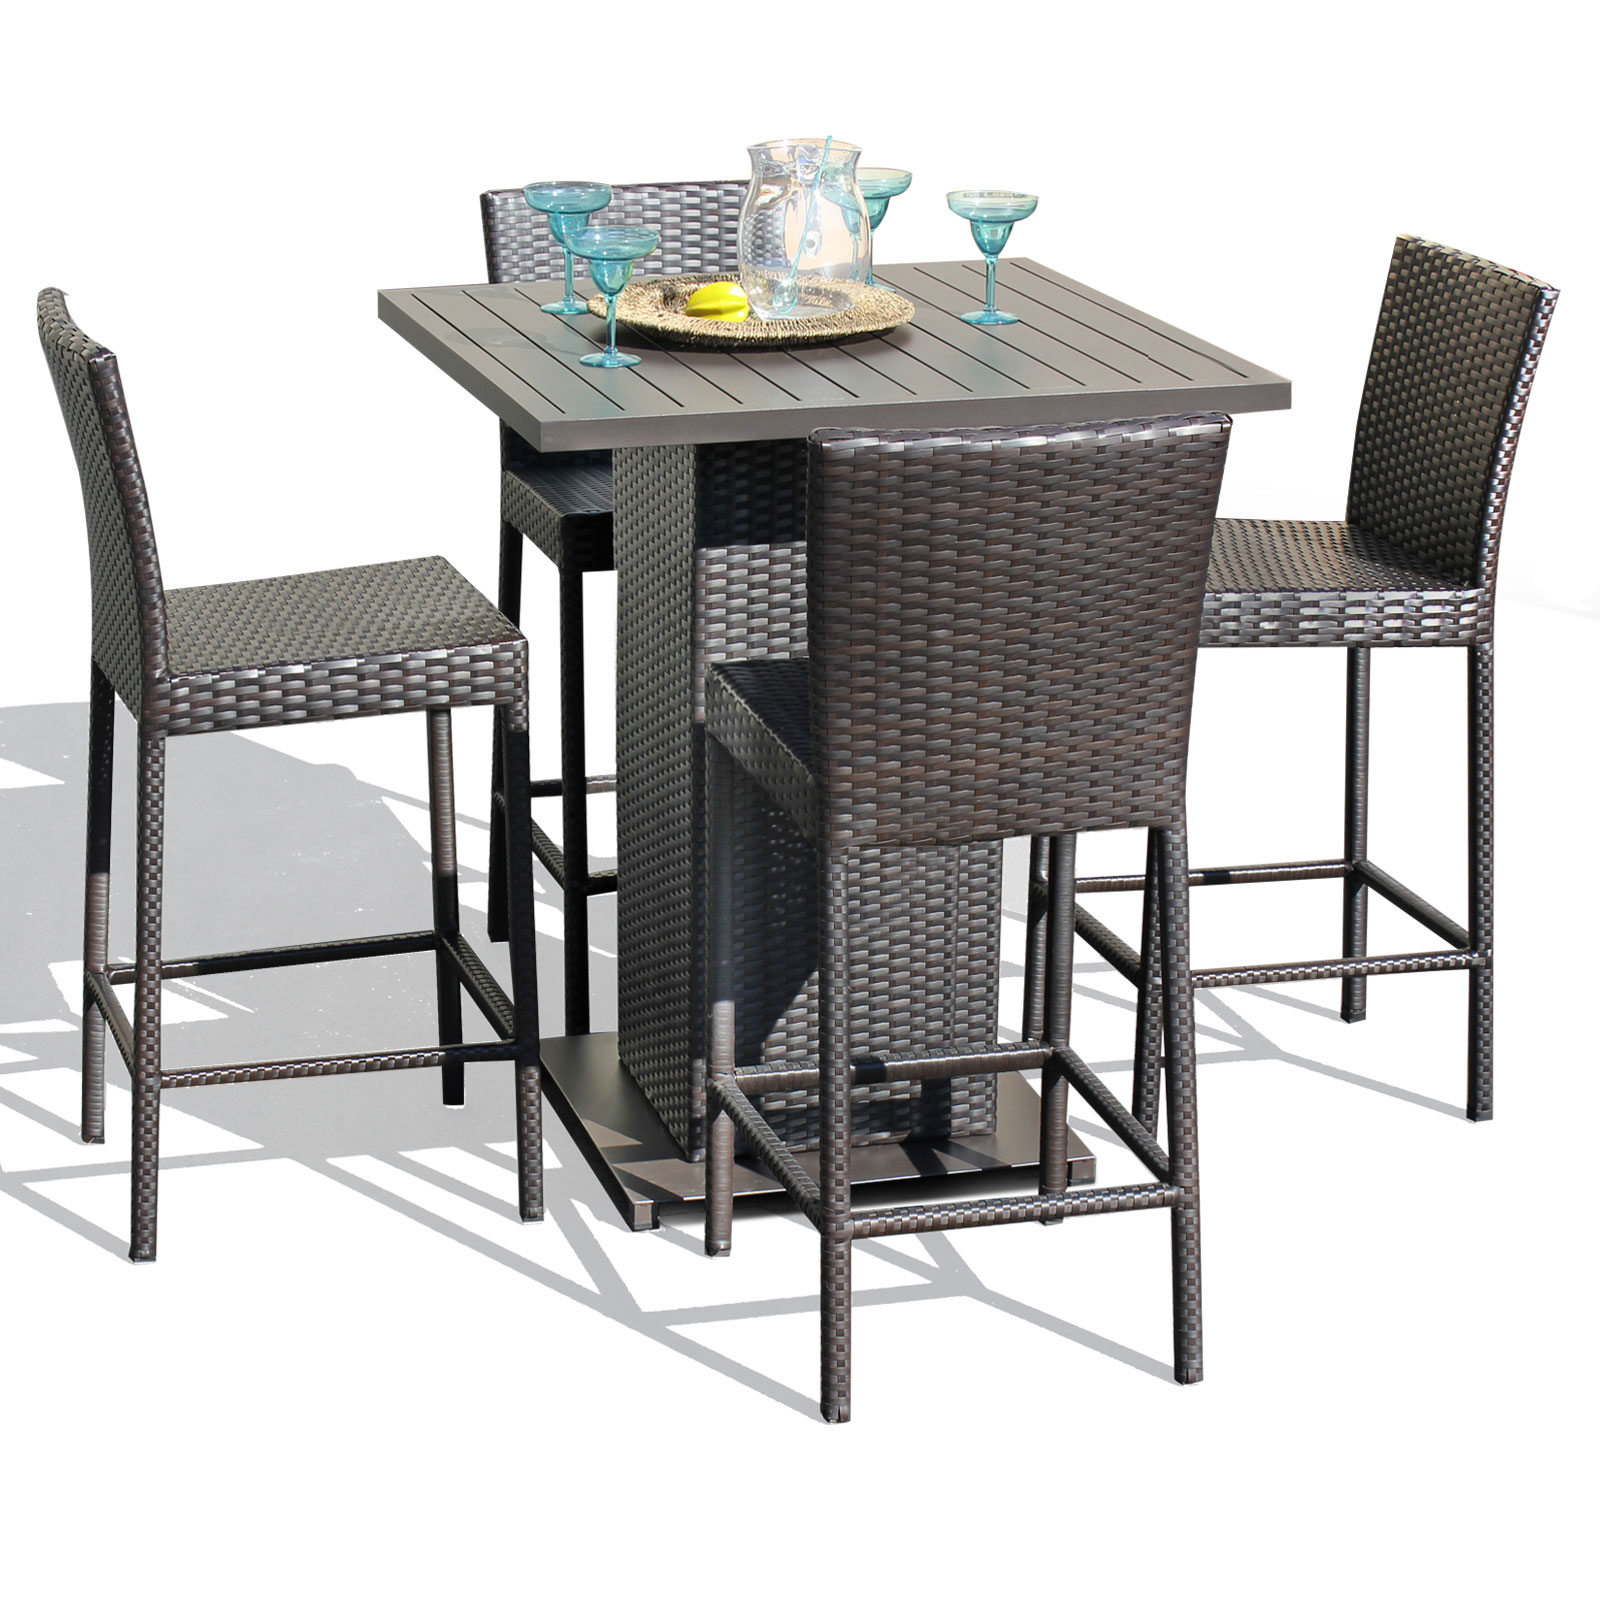 Venus Pub Table Set With Bar Stools 5 Piece Outdoor Wicker Patio Furniture by TK Classics